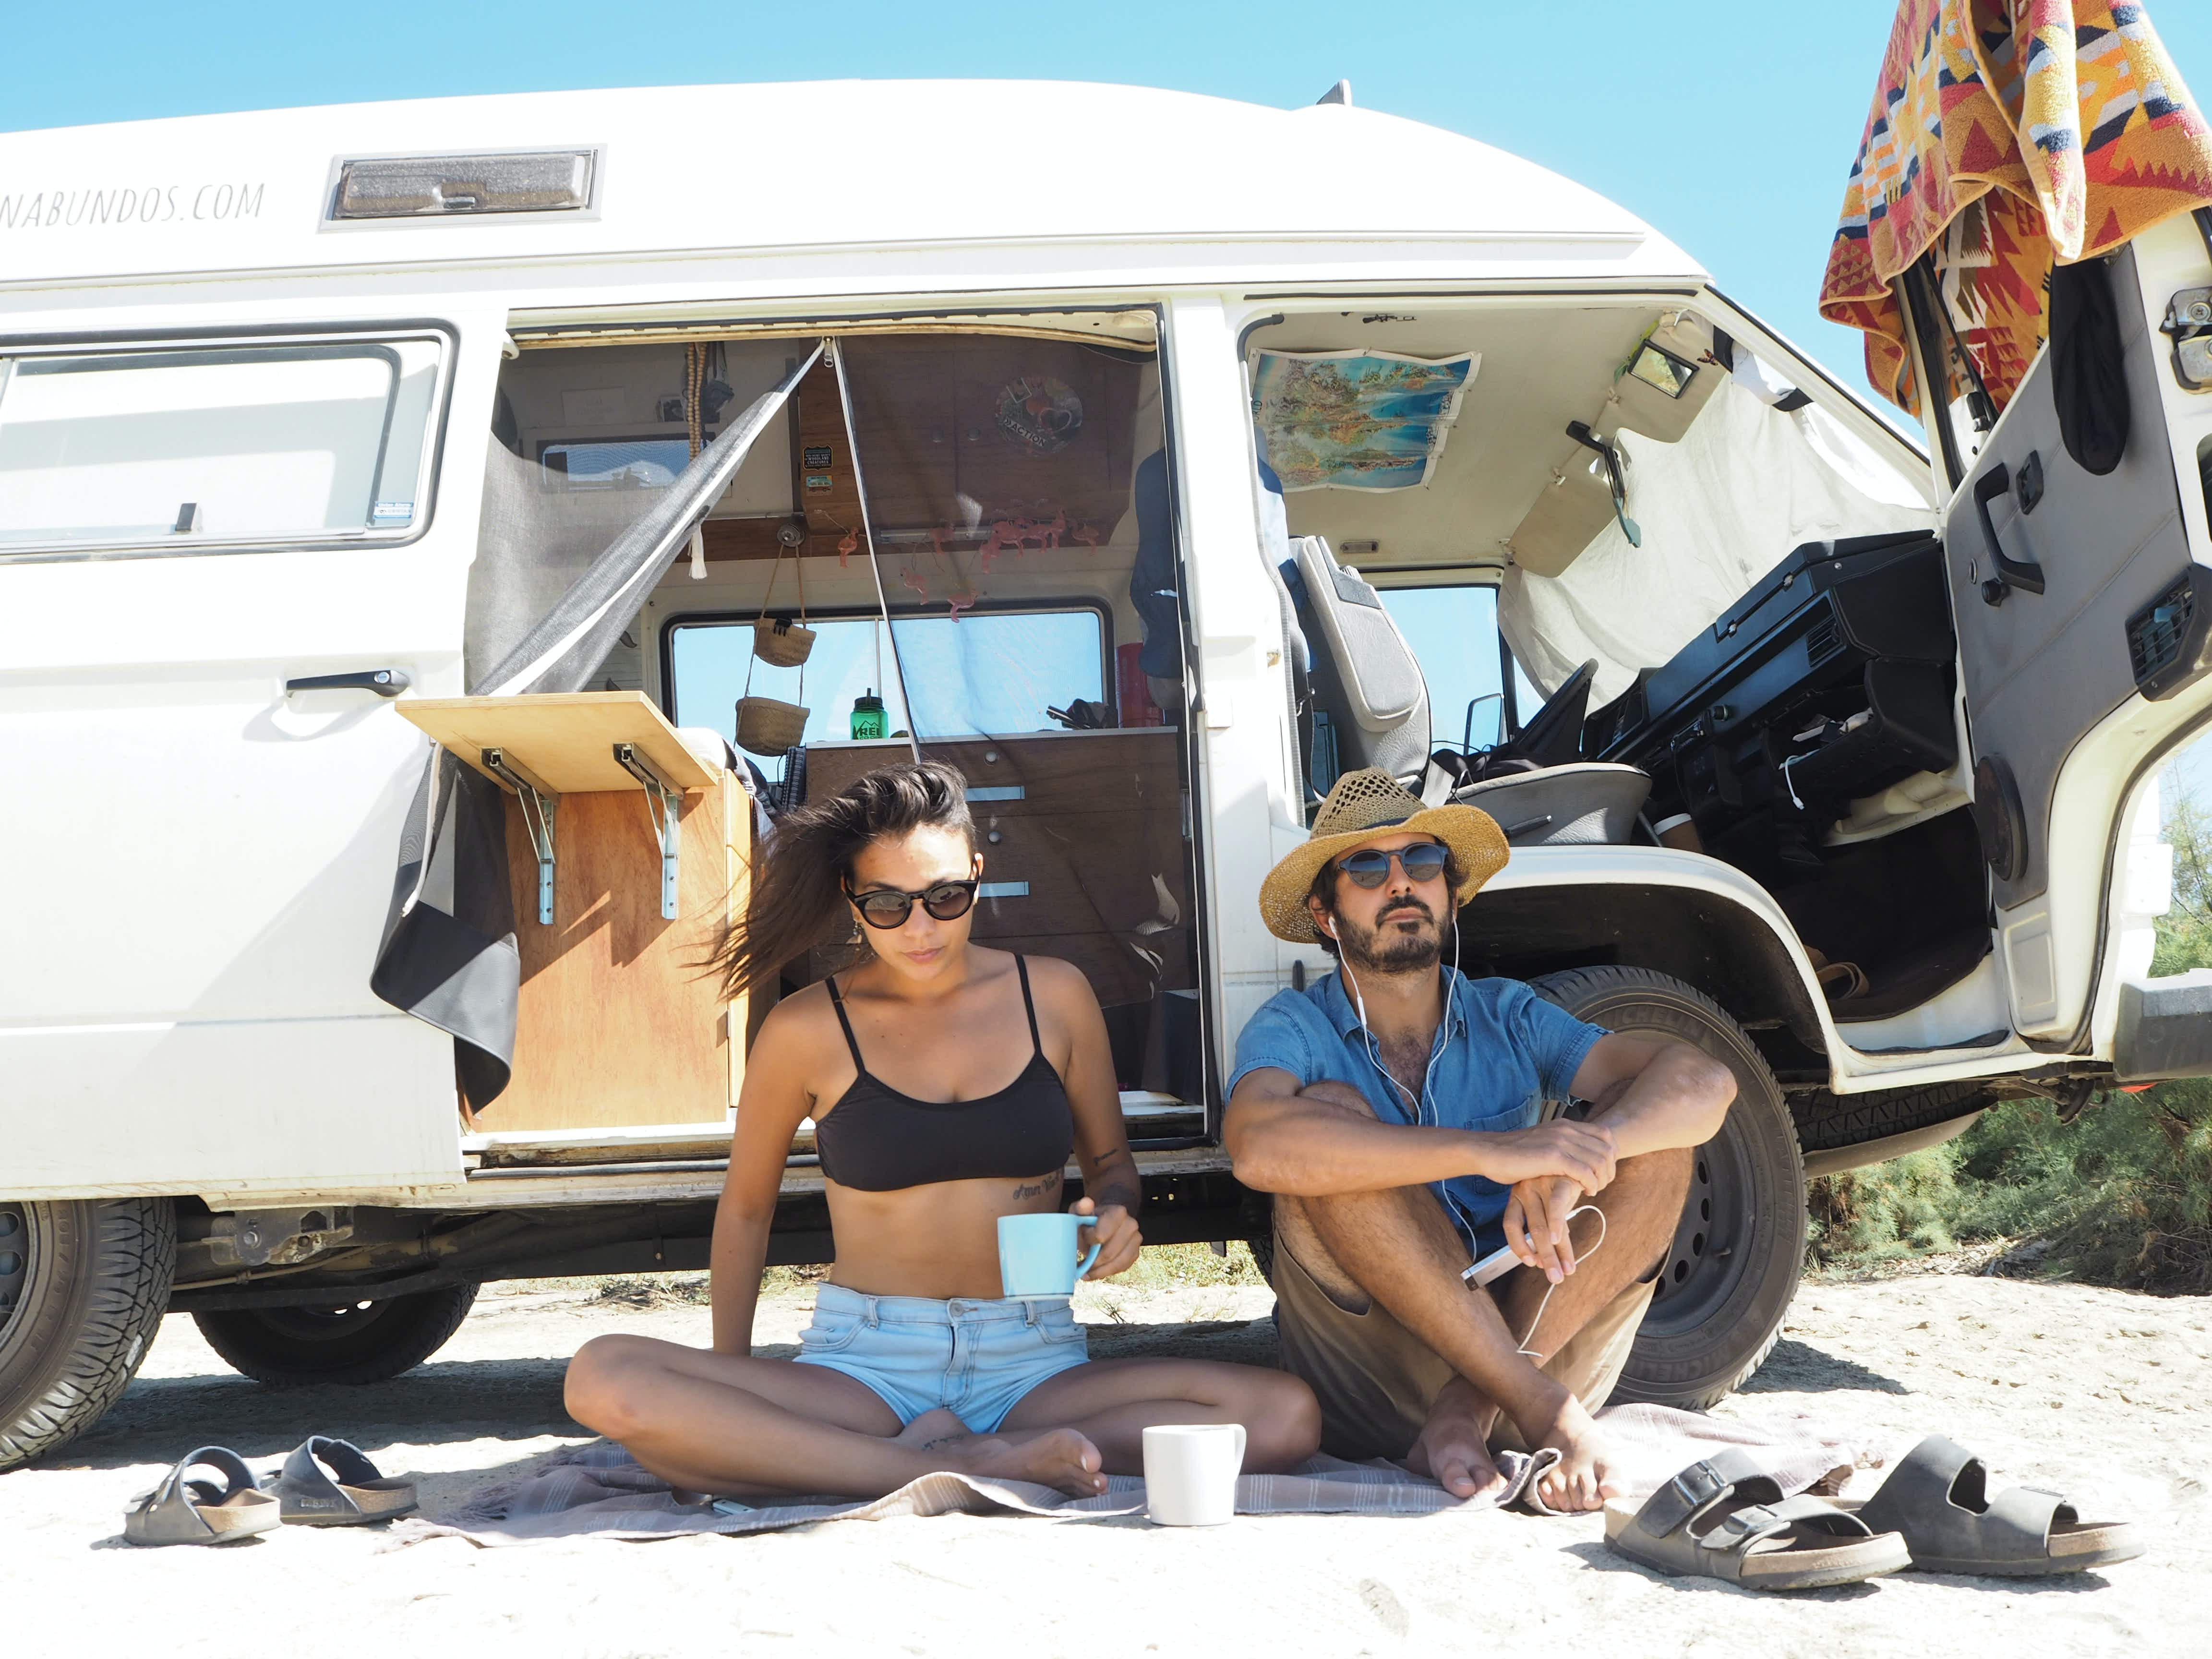 Meet the couple who quit their jobs to travel the world in a Volkswagen van